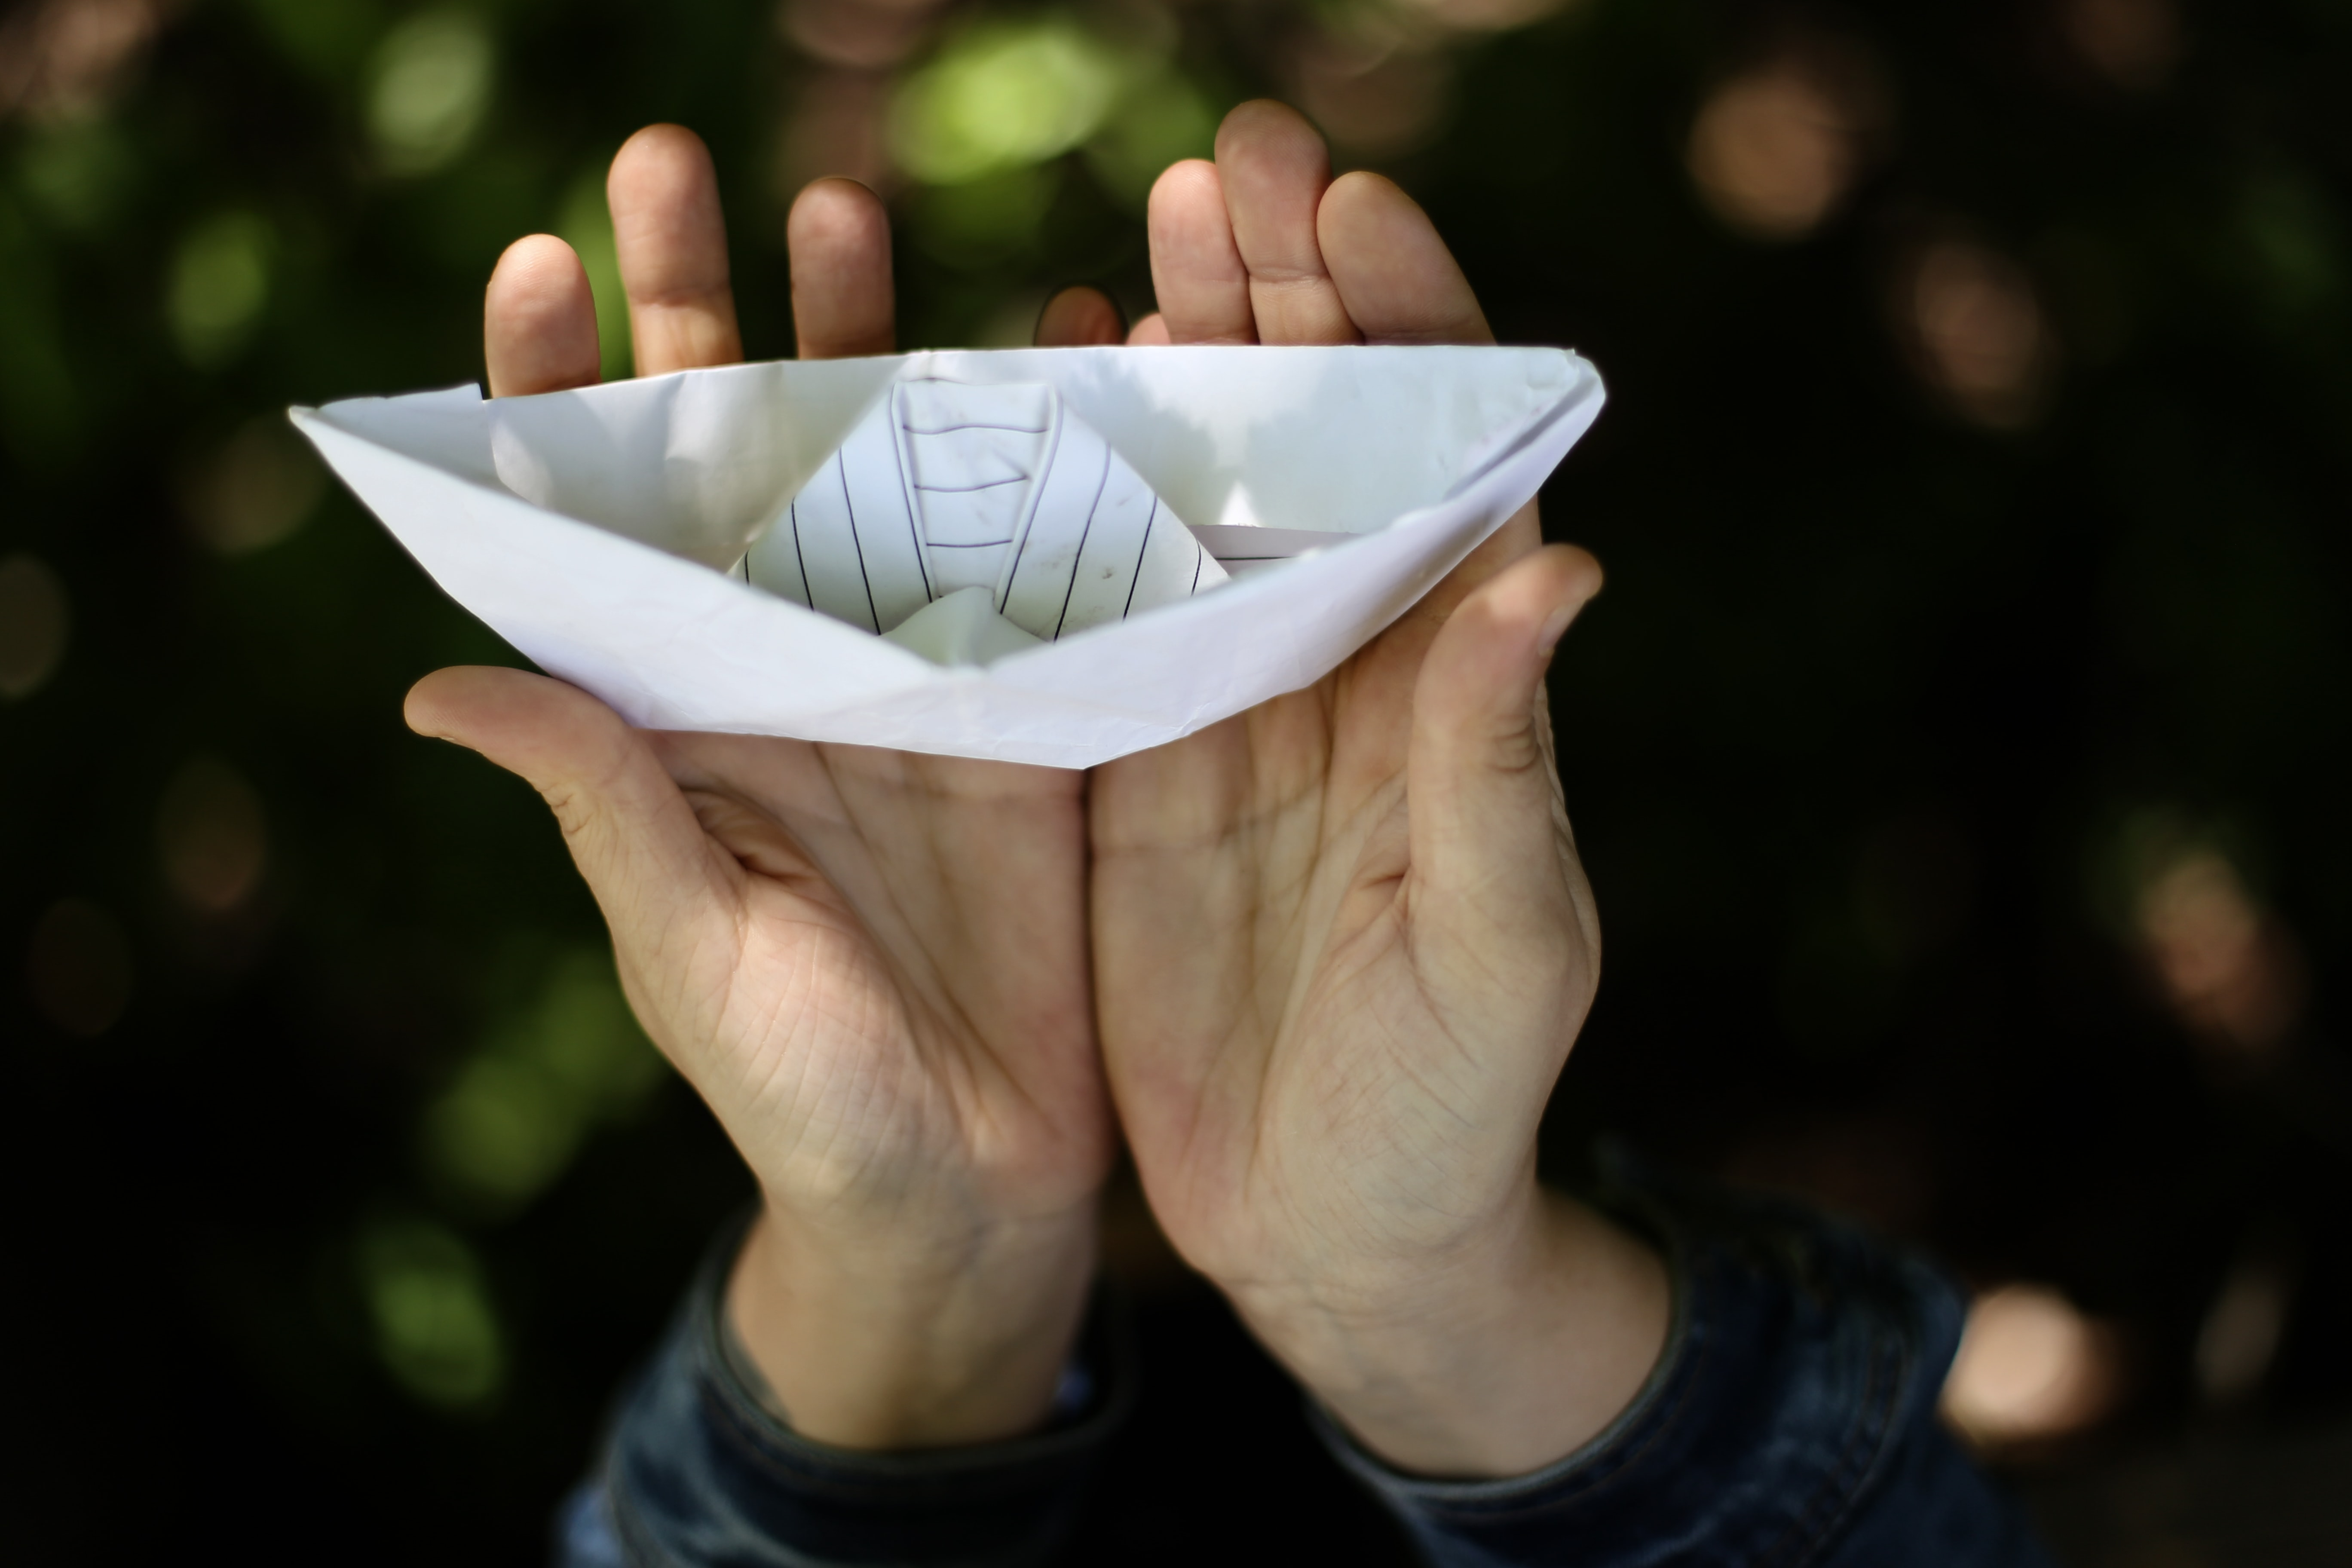 person holding paper boat in focus photography